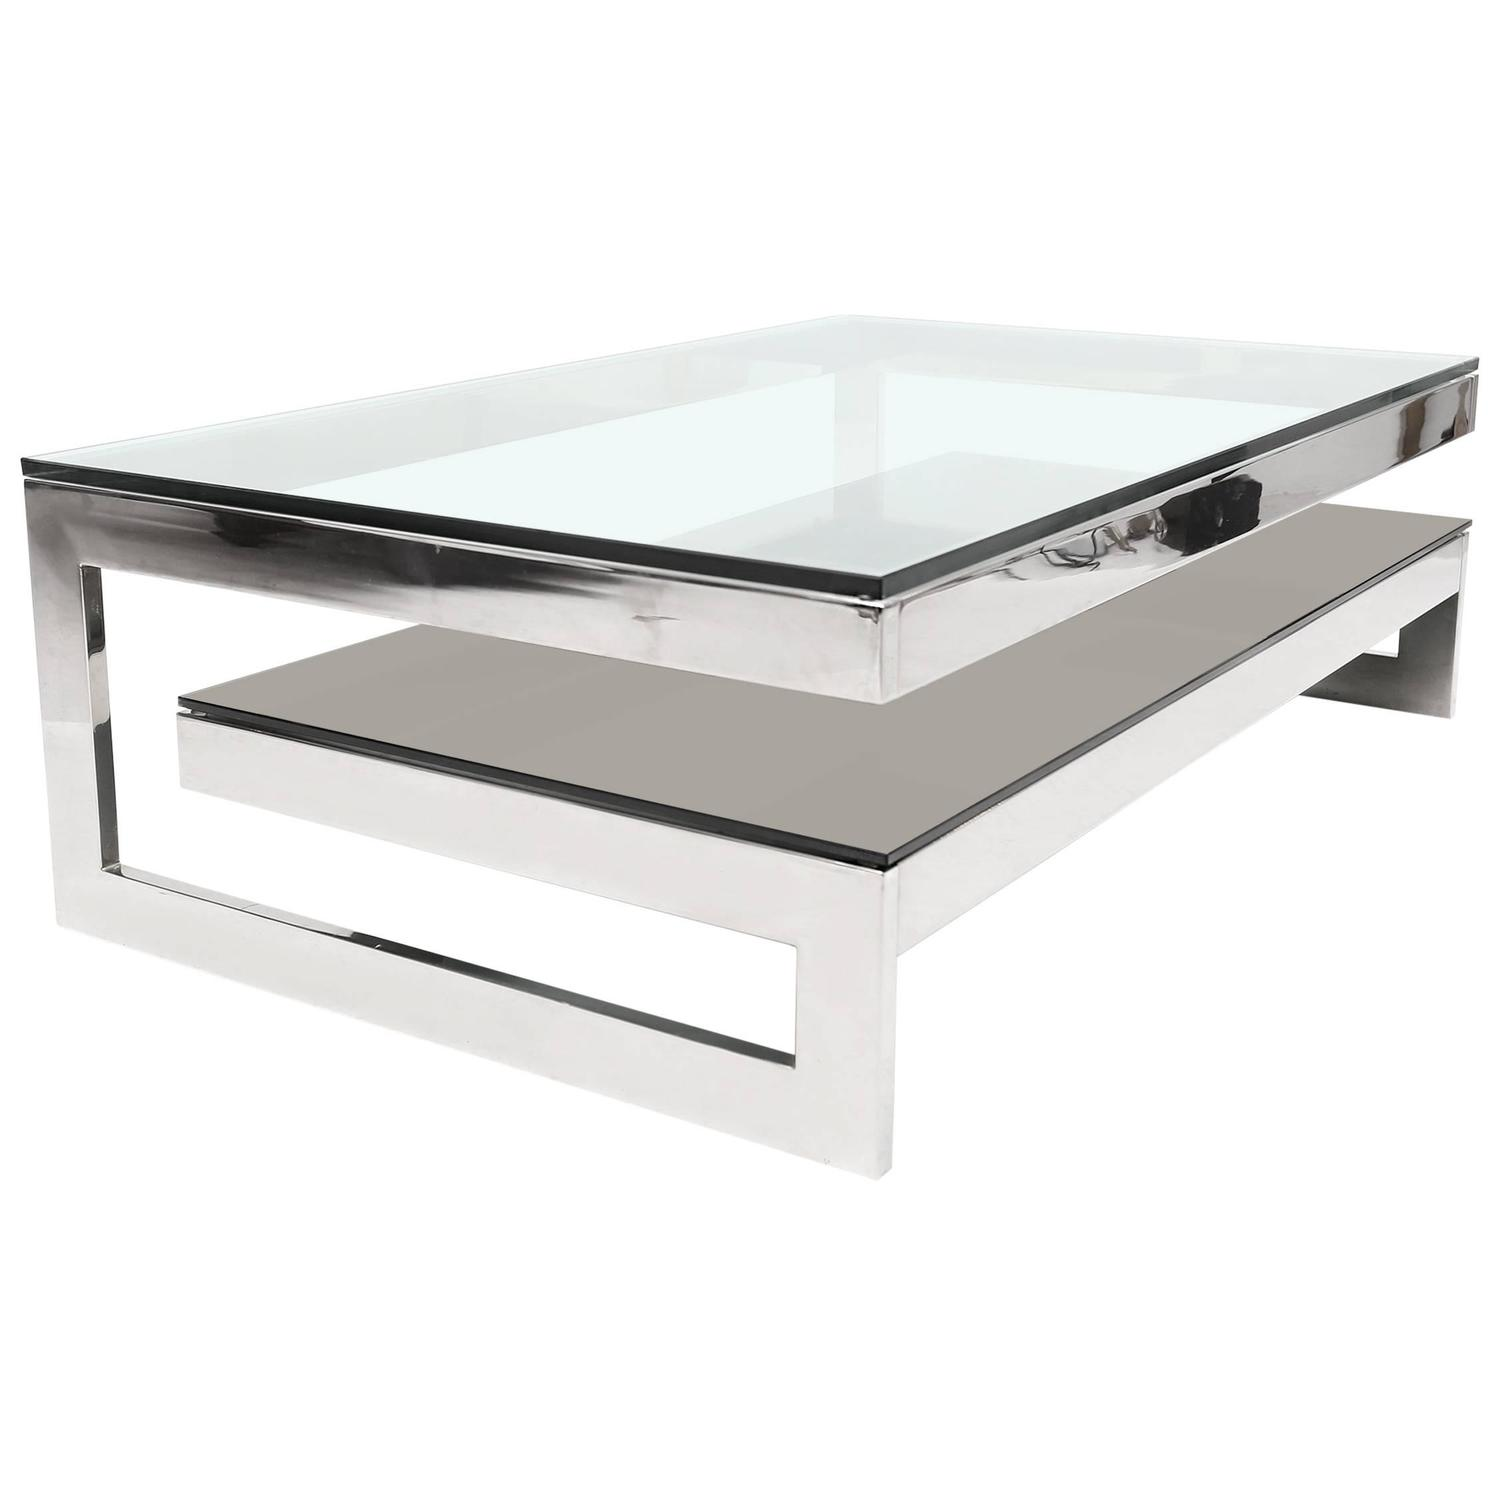 Elegant Chrome And Glass Coffee Table